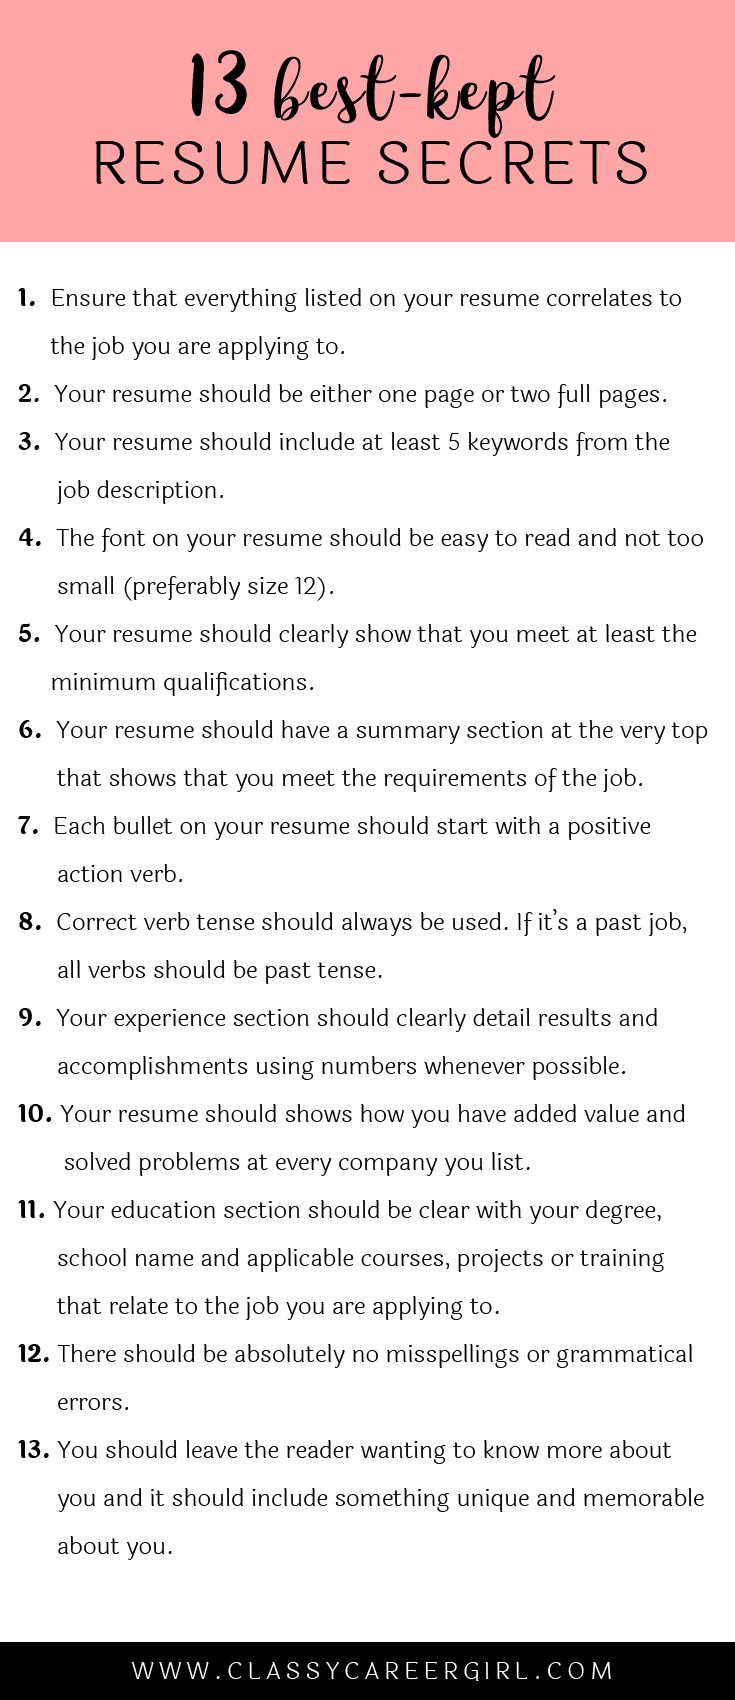 Picnictoimpeachus  Scenic  Ideas About Resume On Pinterest  Cv Format Resume Cv And  With Fetching Some Hiring Managers Will Toss Your Resume Out If You Dont Know These  With Attractive Resume For Financial Analyst Also Public Accounting Resume In Addition Education Resume Format And Security Guard Resume Objective As Well As Government Resume Format Additionally Merchandiser Job Description Resume From Pinterestcom With Picnictoimpeachus  Fetching  Ideas About Resume On Pinterest  Cv Format Resume Cv And  With Attractive Some Hiring Managers Will Toss Your Resume Out If You Dont Know These  And Scenic Resume For Financial Analyst Also Public Accounting Resume In Addition Education Resume Format From Pinterestcom